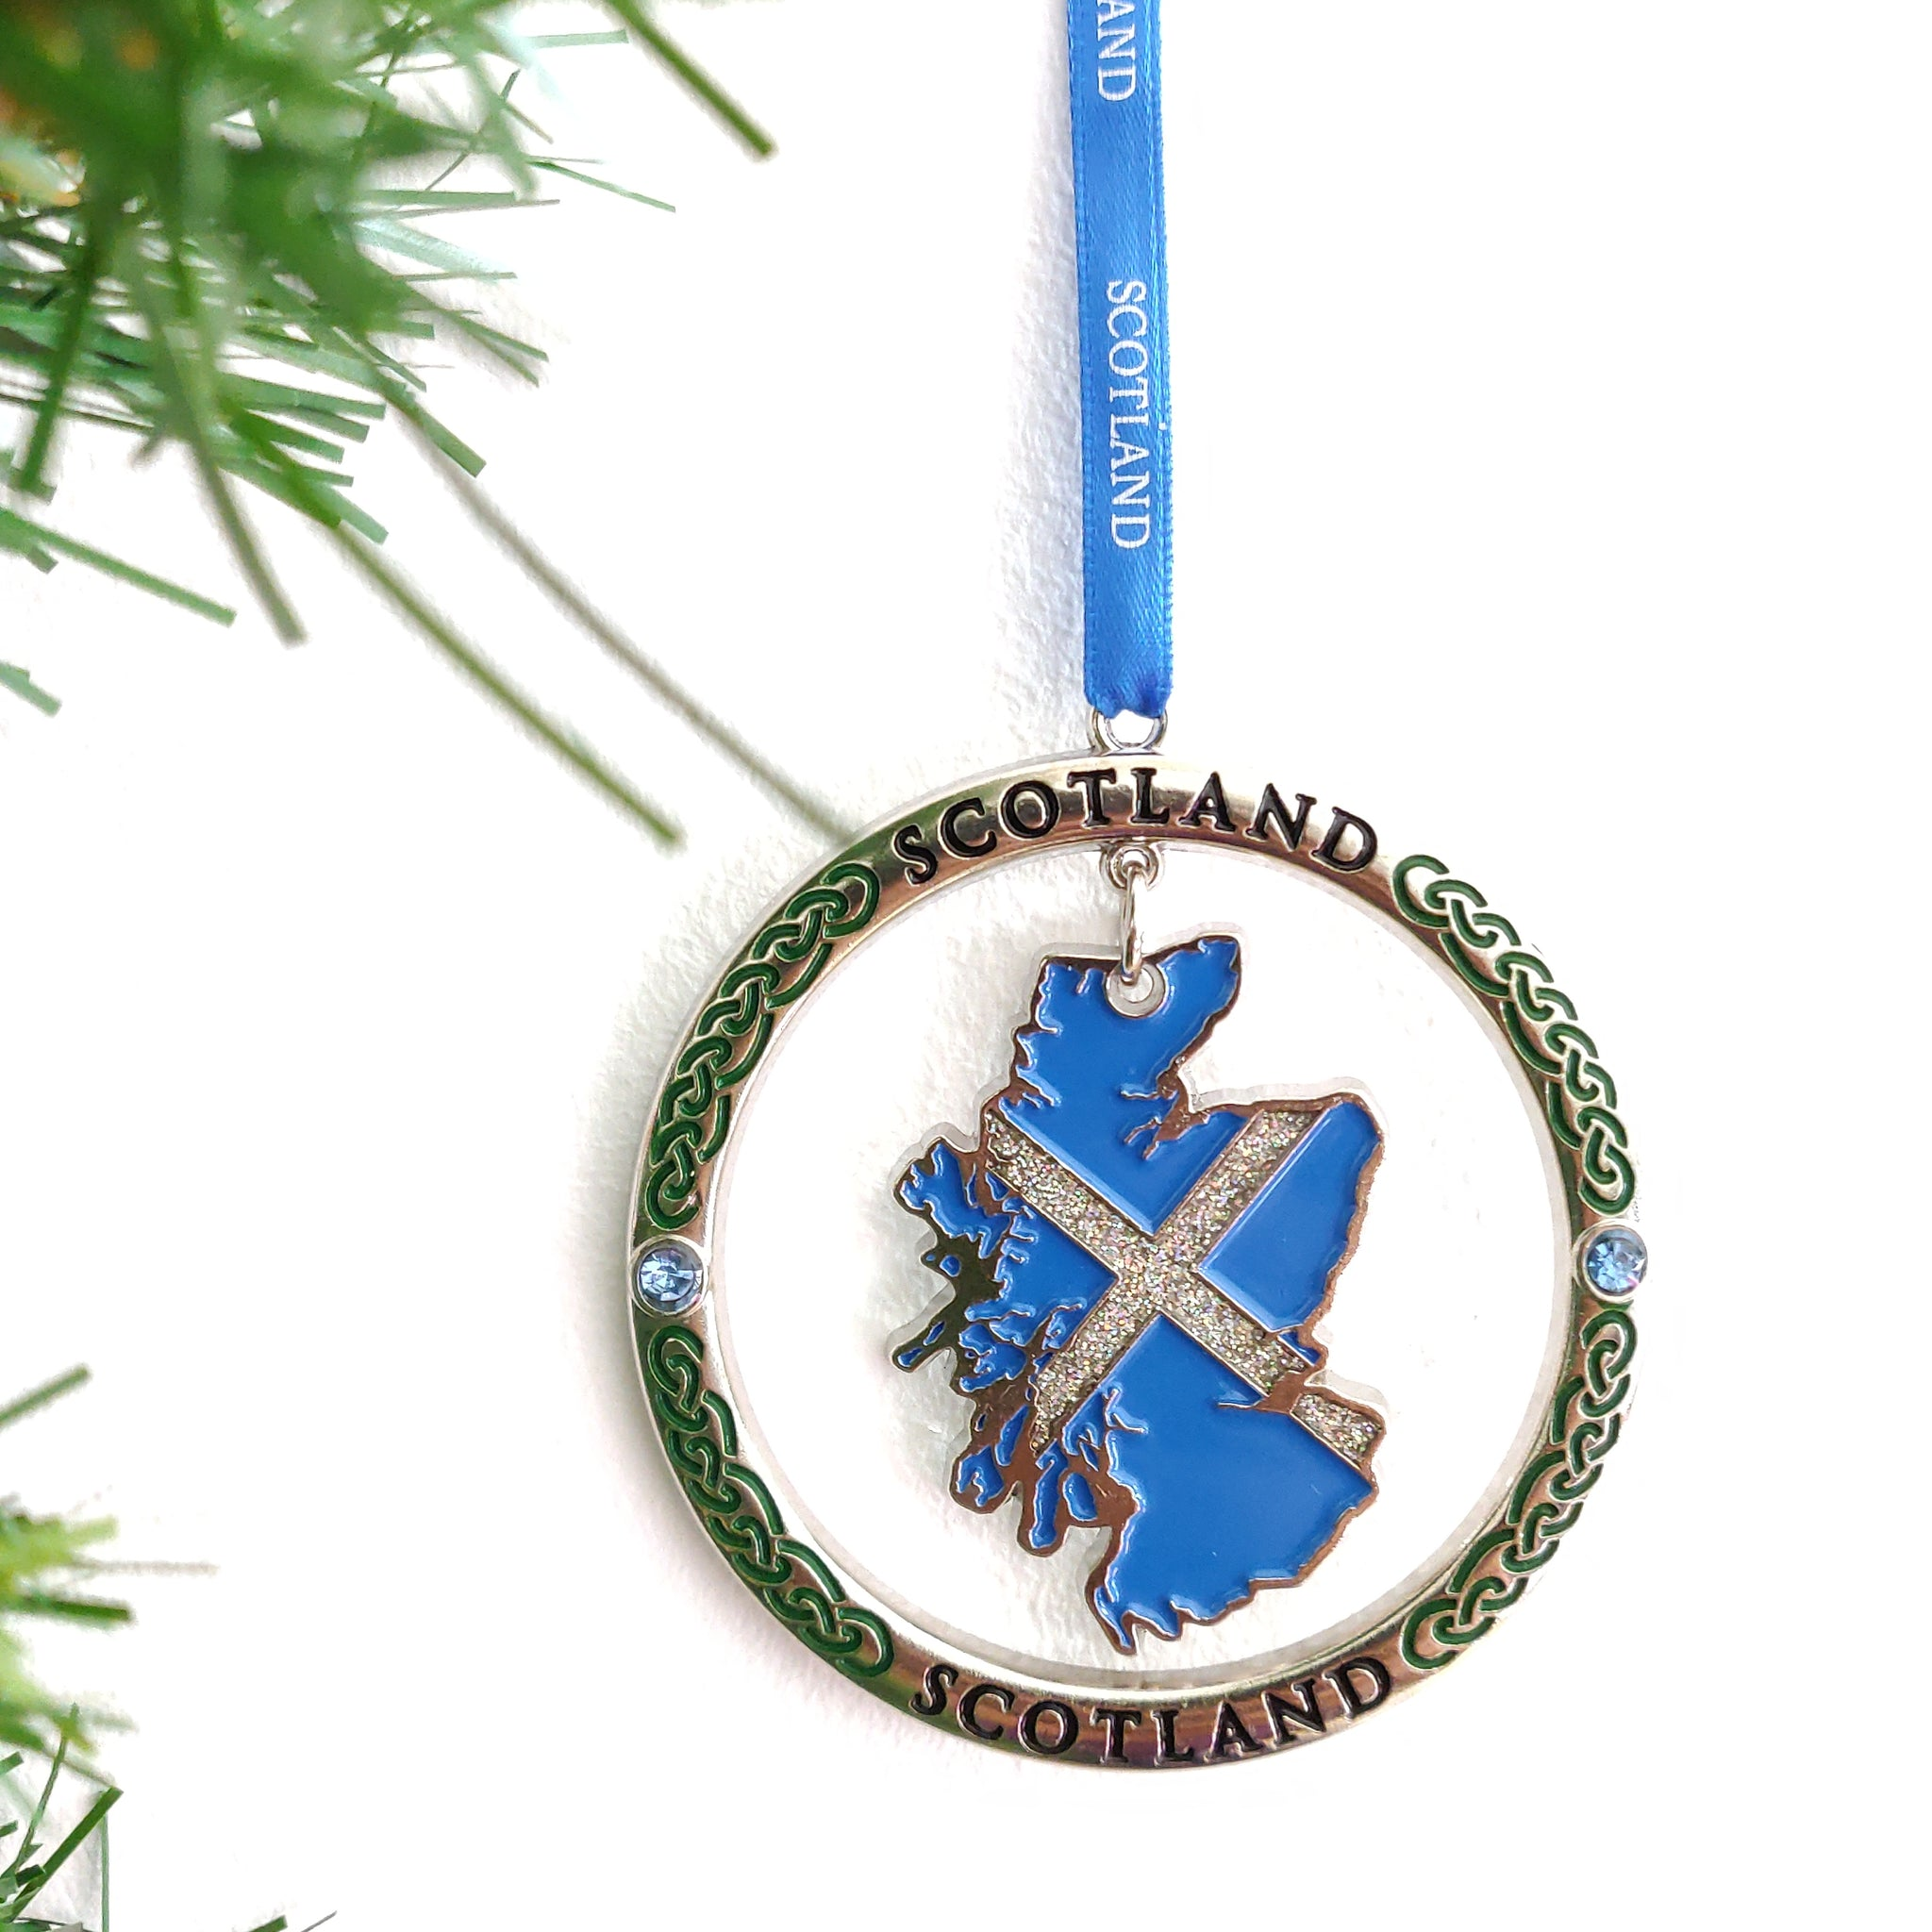 Scottish Medallion Scotland Map